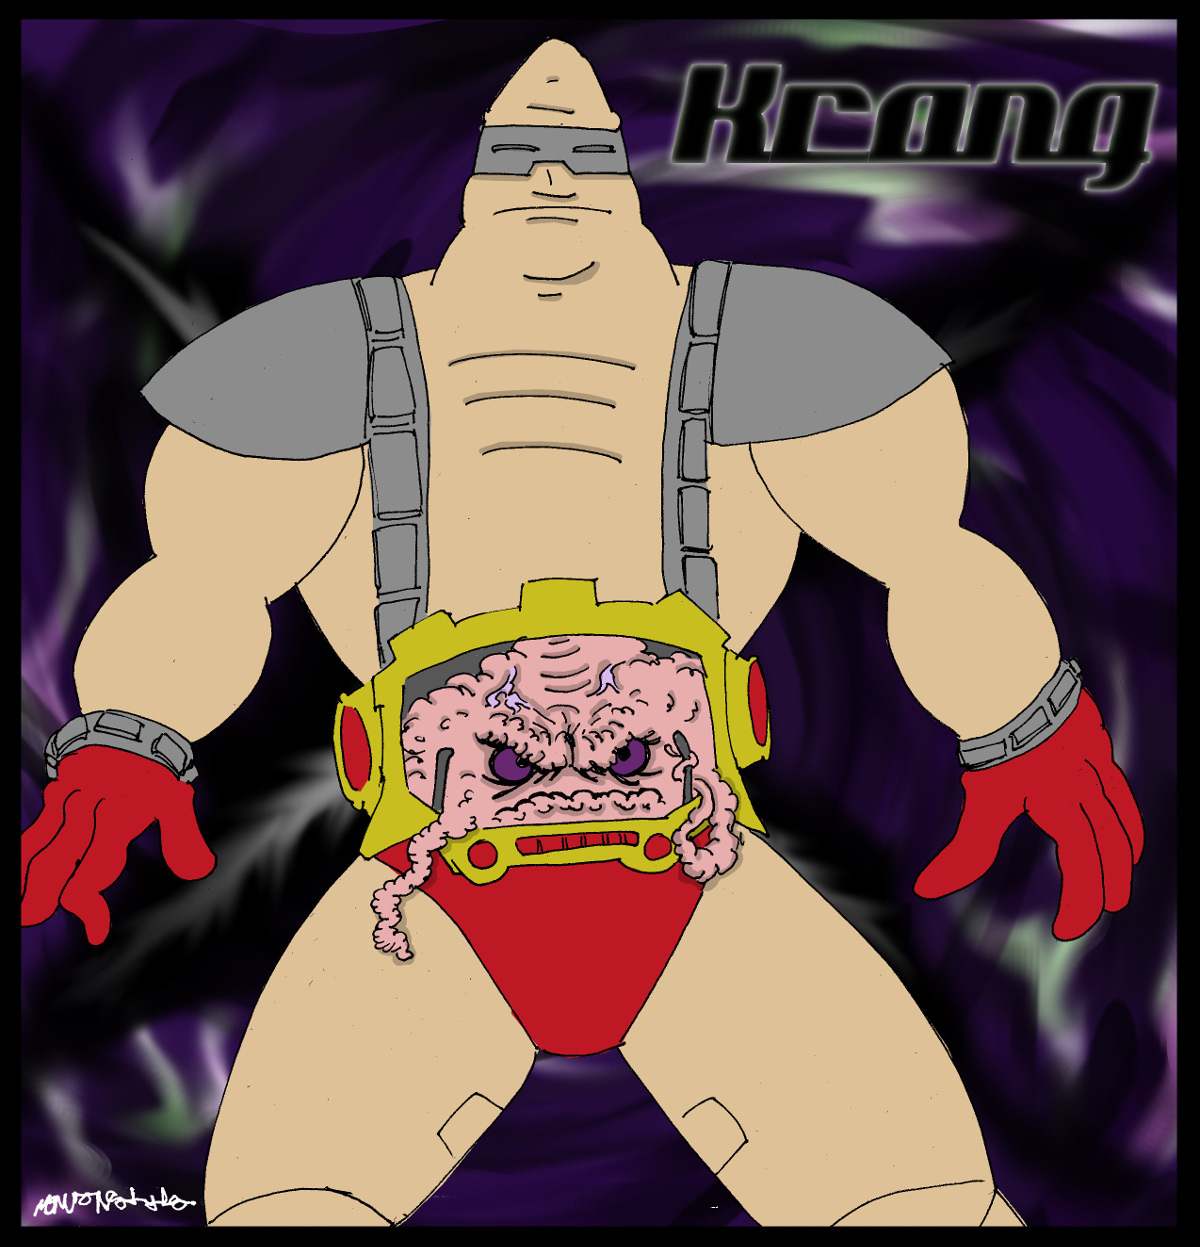 Other People's Shit: Krang